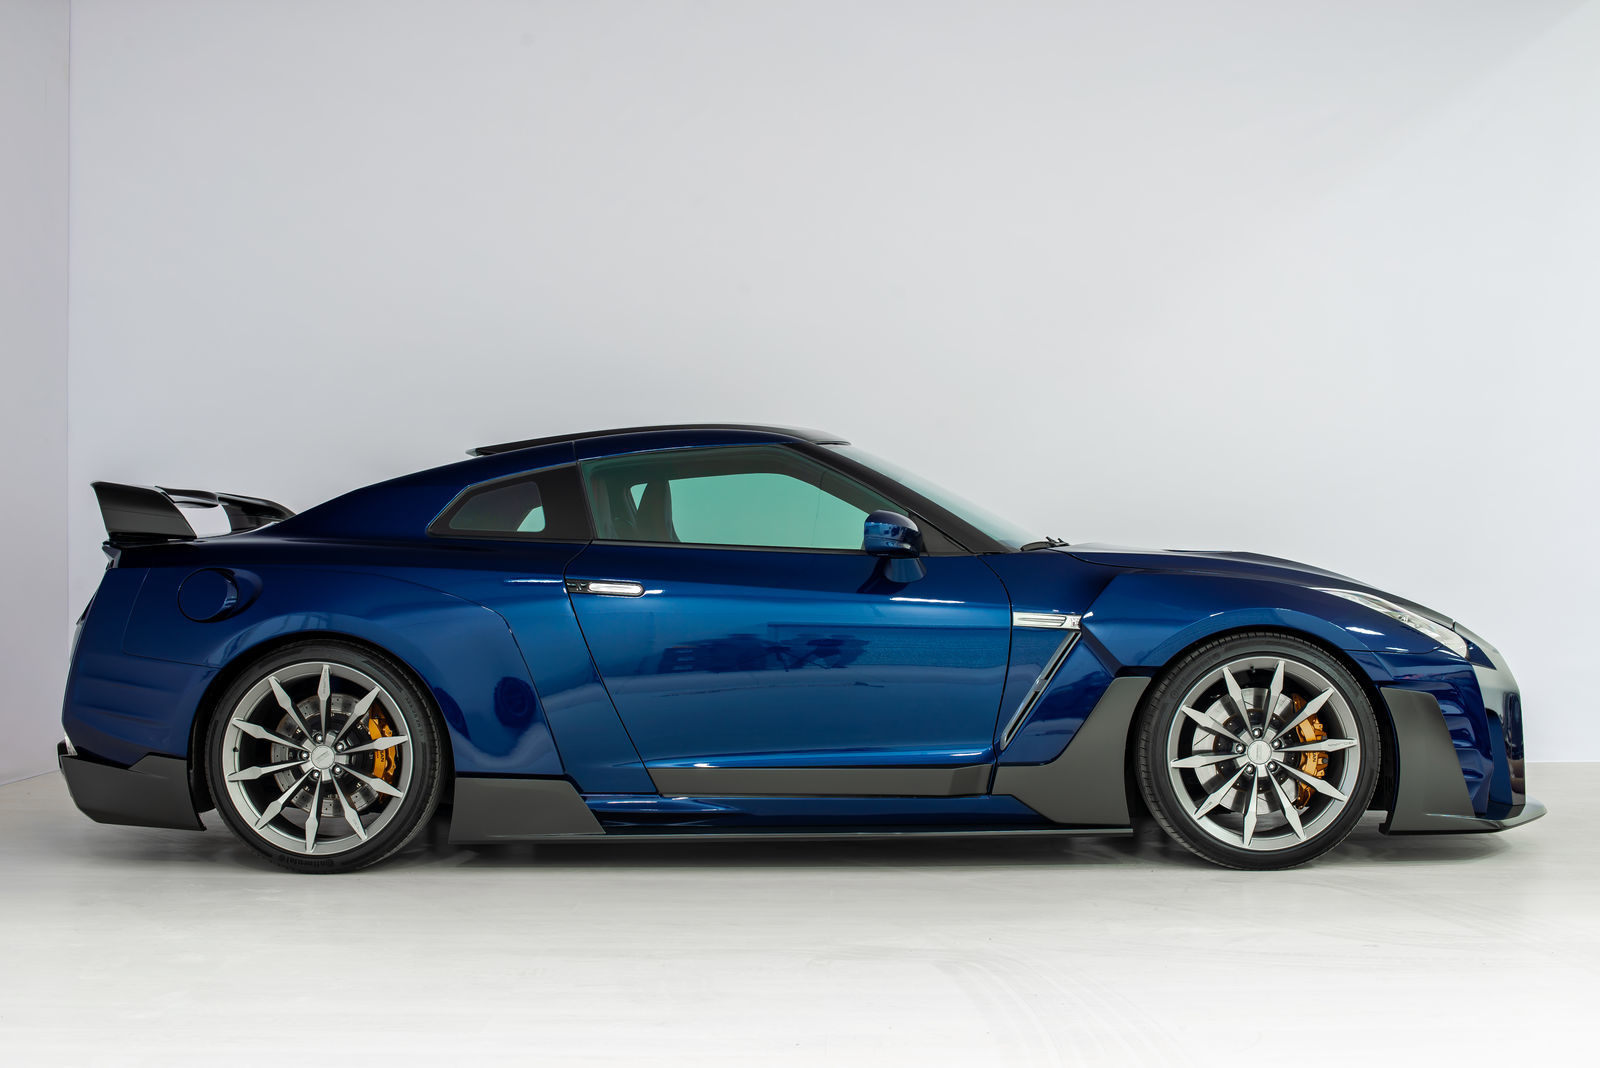 SCL PERFORMANCE body kit for Nissan GT-R GOJIRA